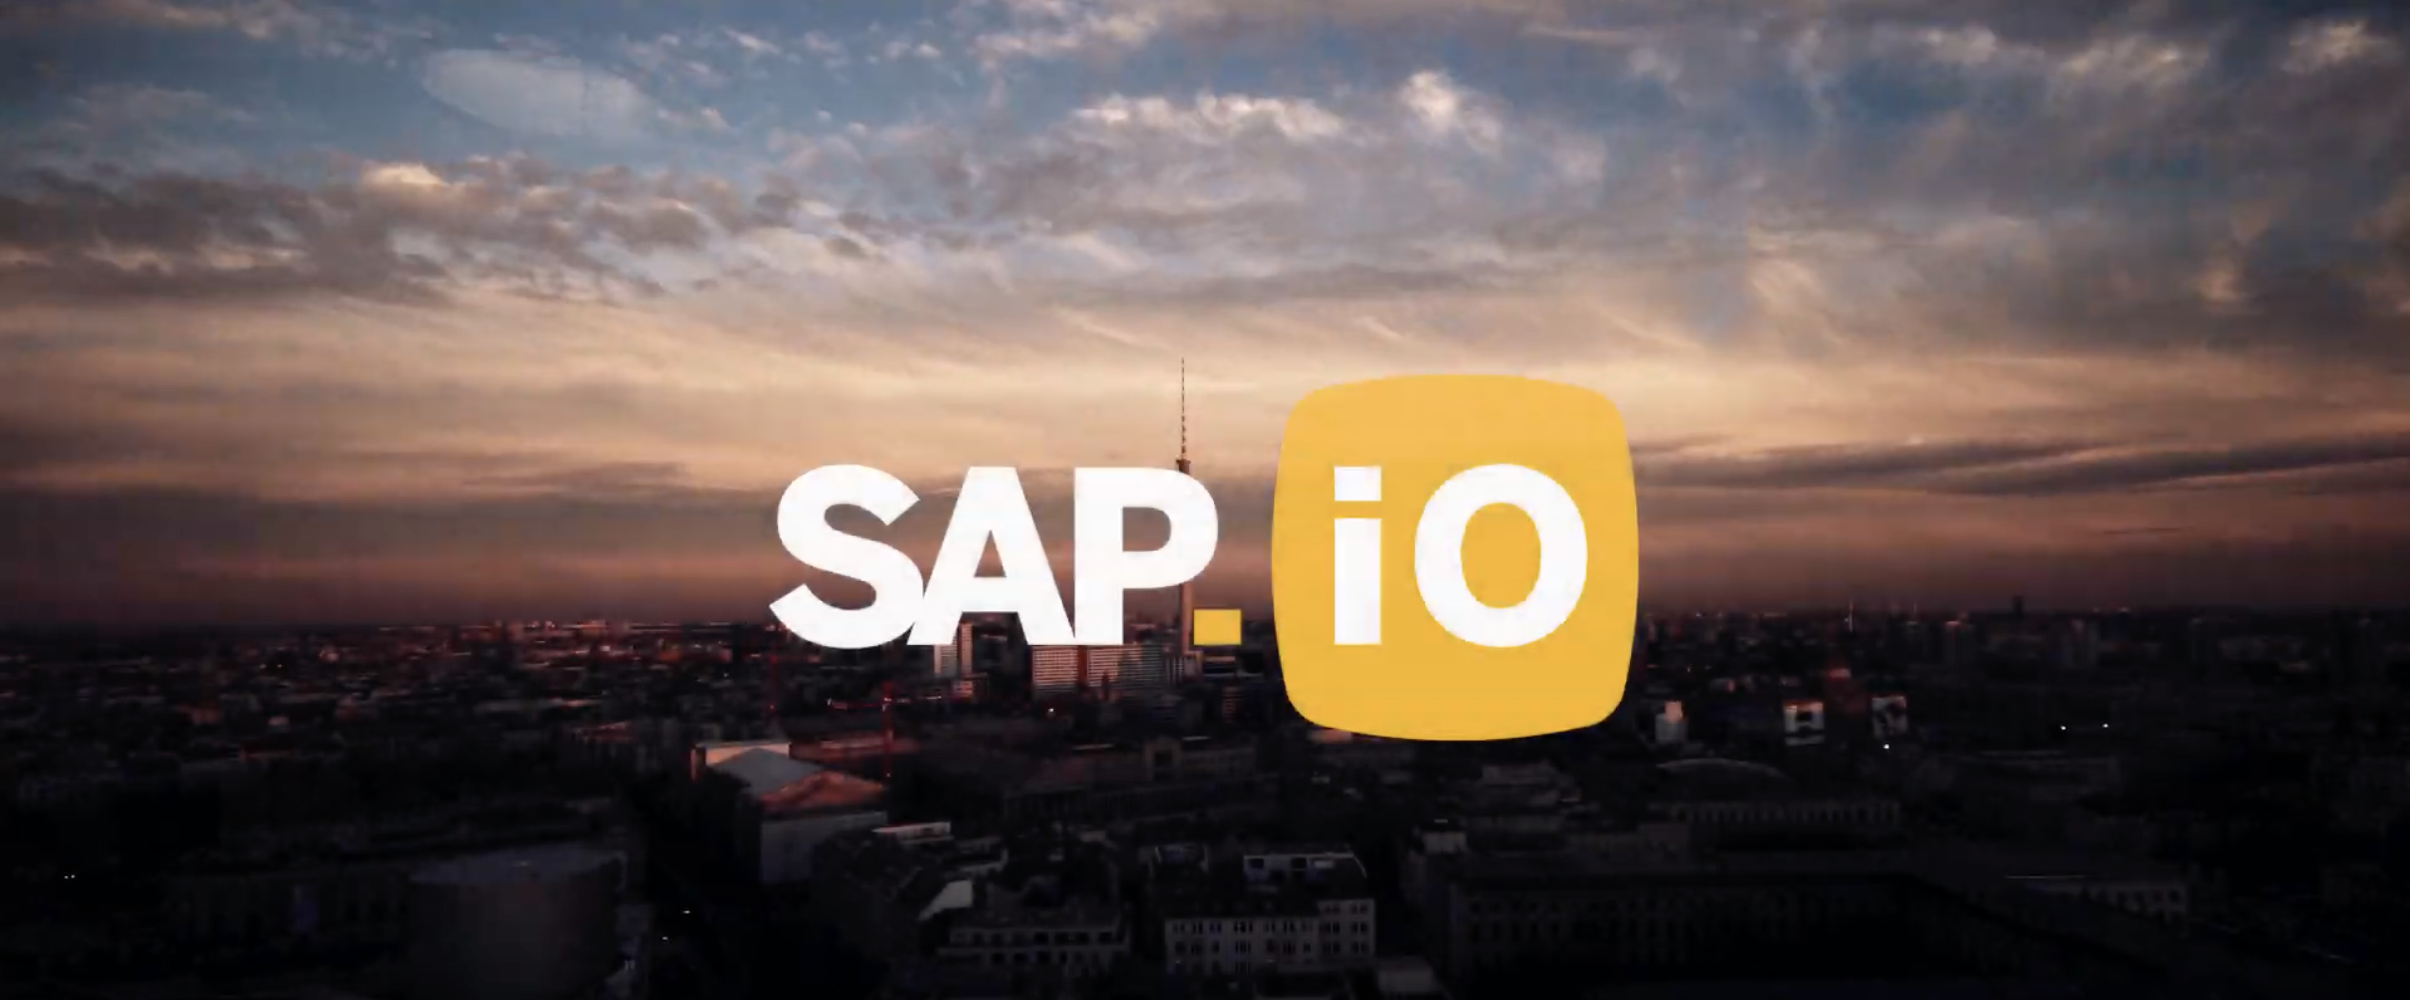 SAP.iO Overview Video